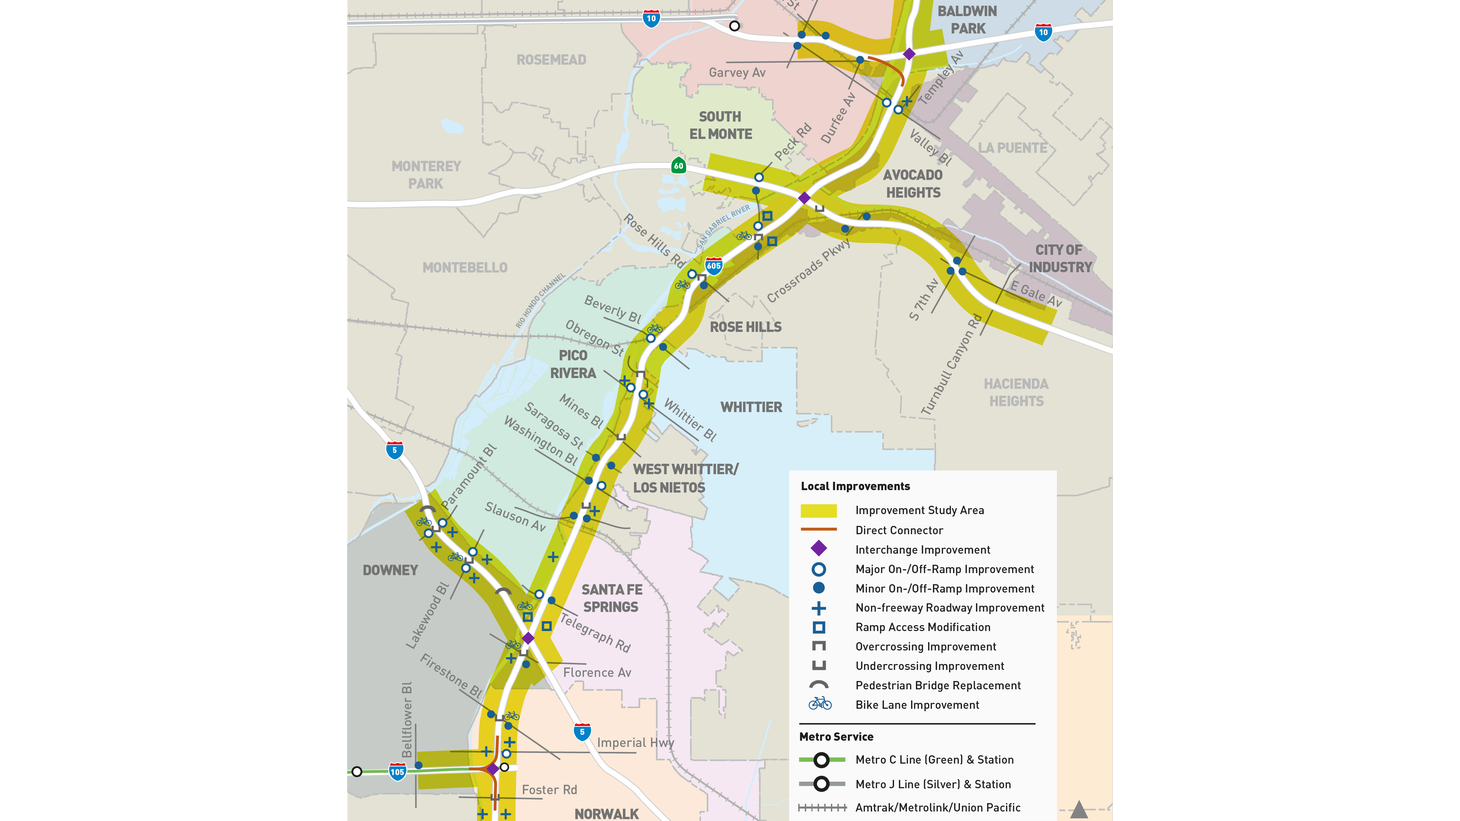 A proposed highway expansion project raises old fears and new values